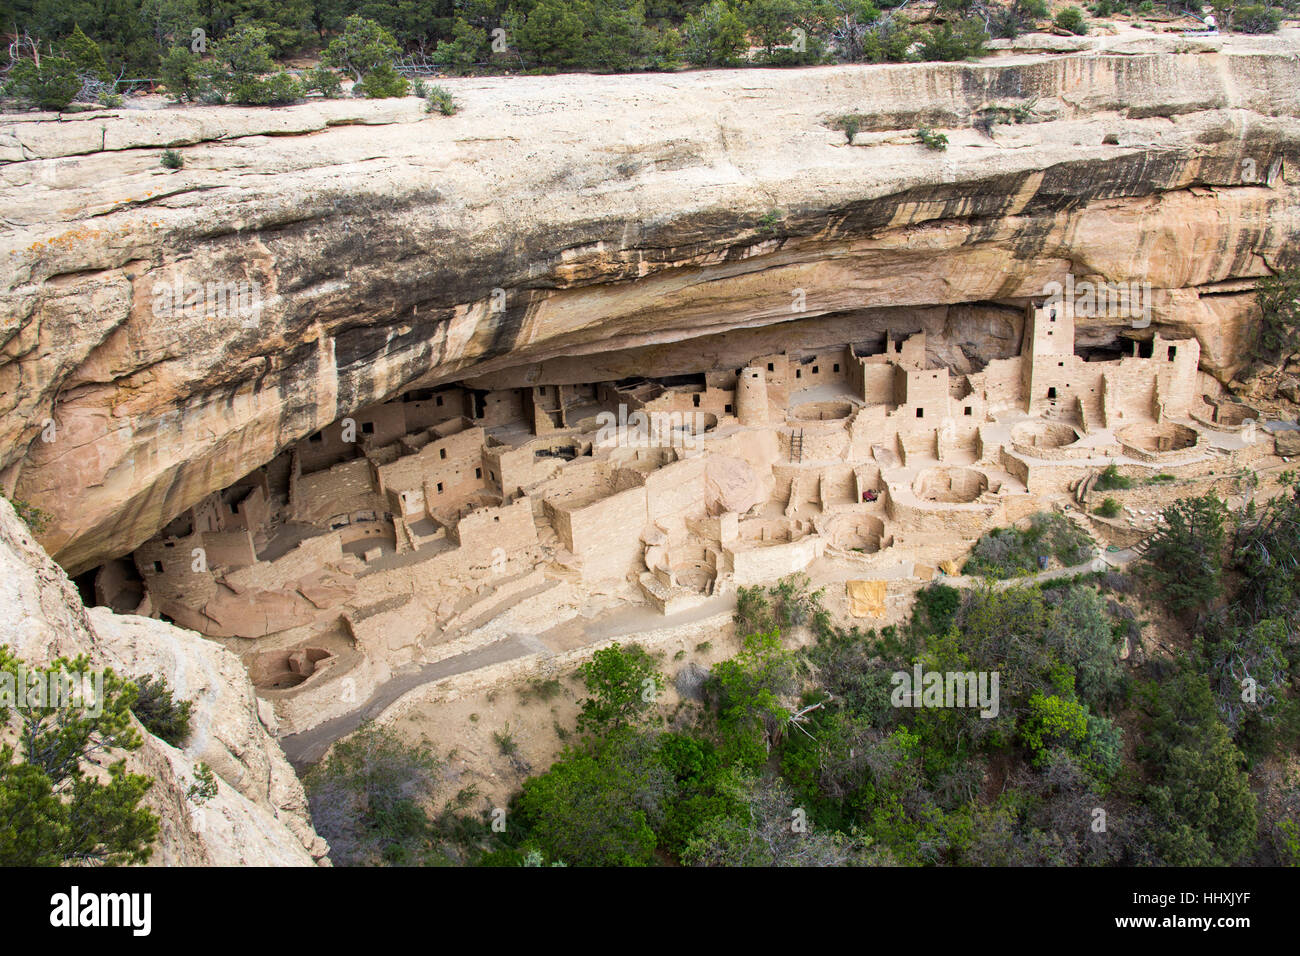 Balcony House cliff dwelling, Mesa Verde National Park, New Mexico, USA - Stock Image